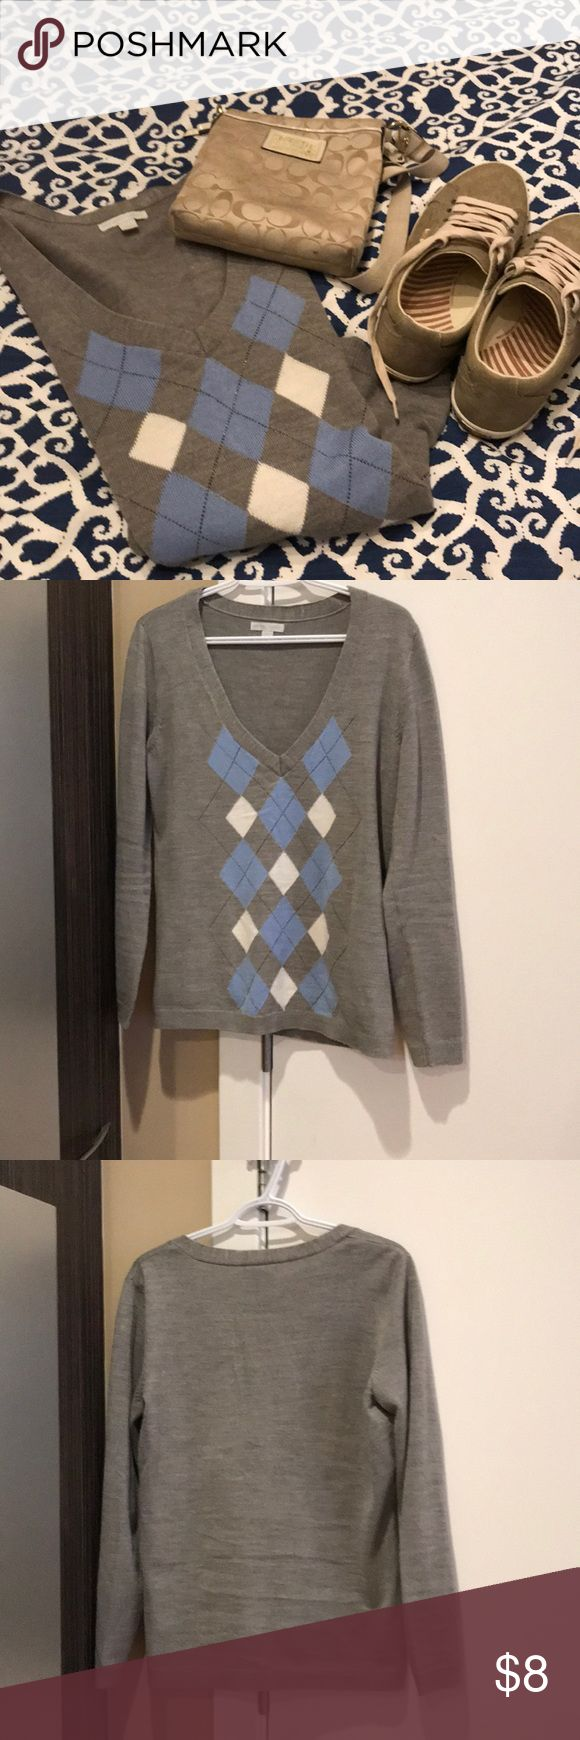 """NY & CO v-neck argyle sweater Soft and comfy argyle sweater with light blue and white pattern in front. 20"""" armpit to armpit and 24"""" neck to bottom in back. Small dots of white as shown in photo but hardly seen when on. Price reflected however. Must Bundle for price reduction. New York & Company Sweaters V-Necks"""